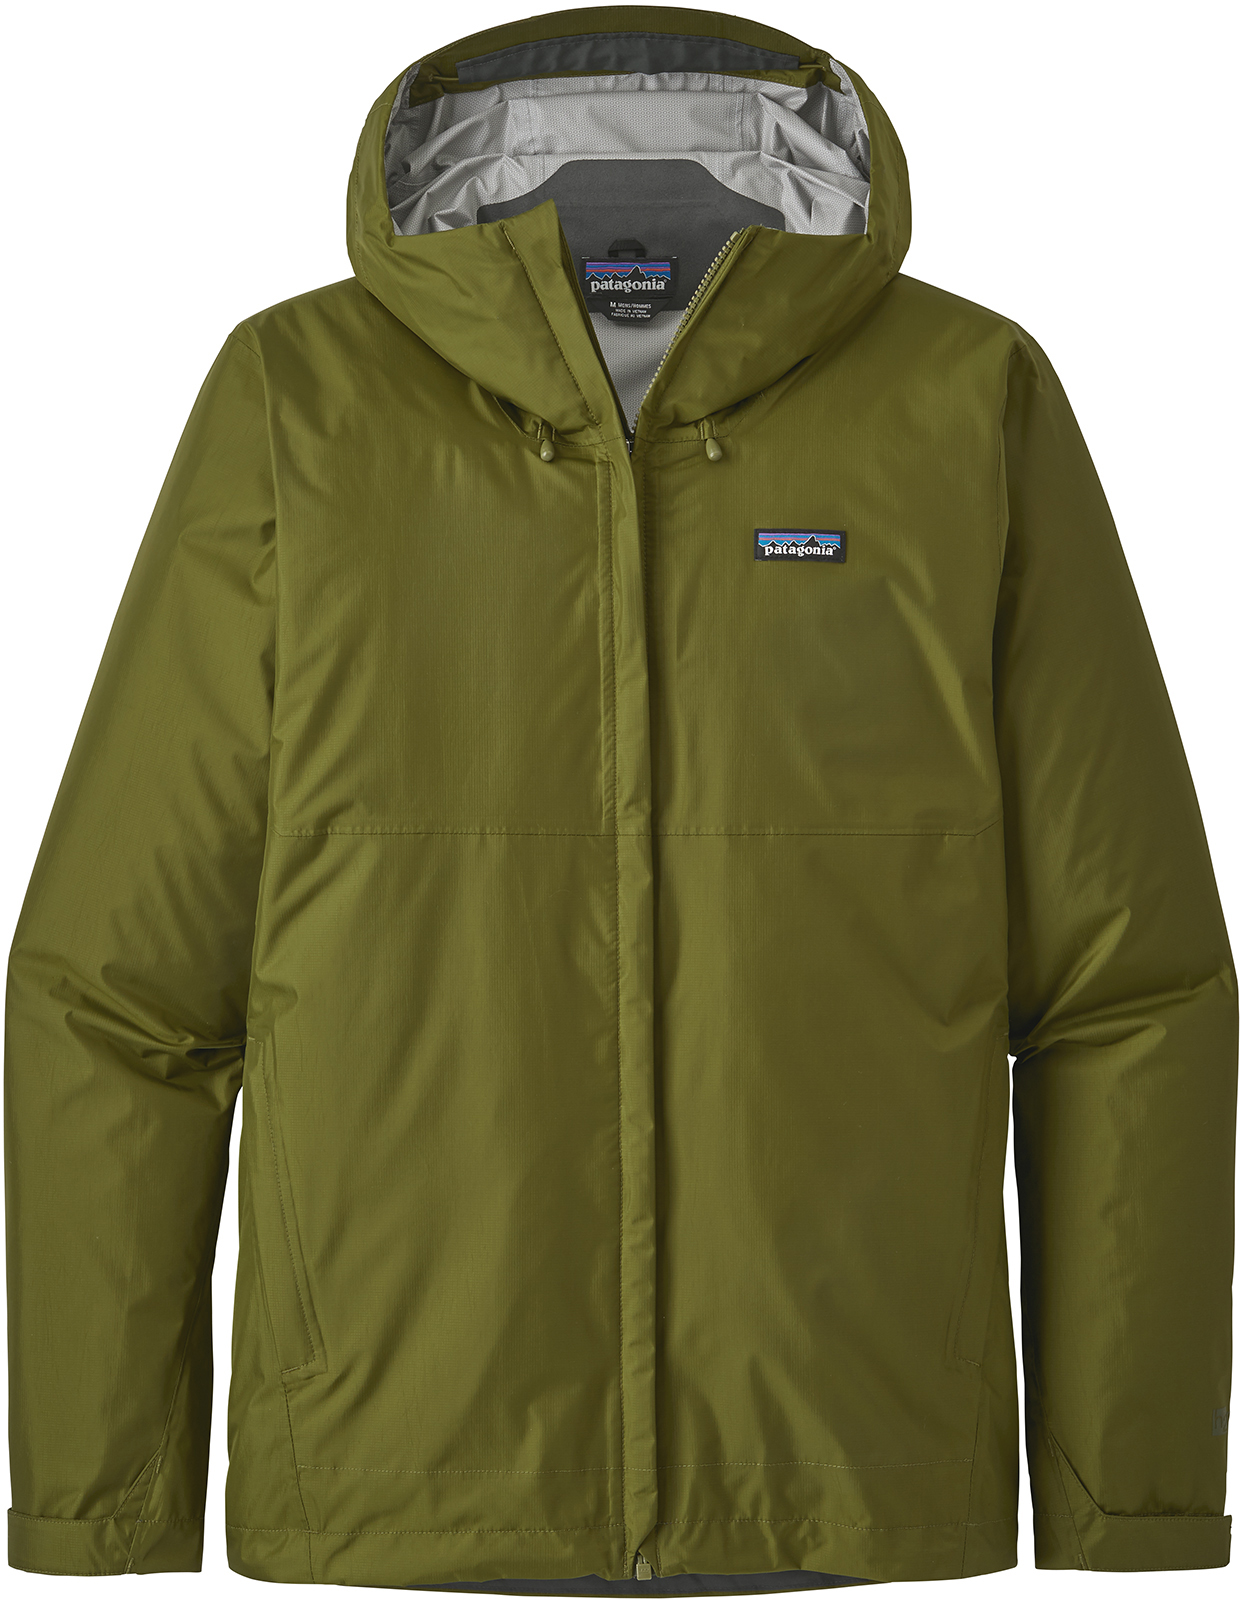 7cd8805aafc Patagonia All products